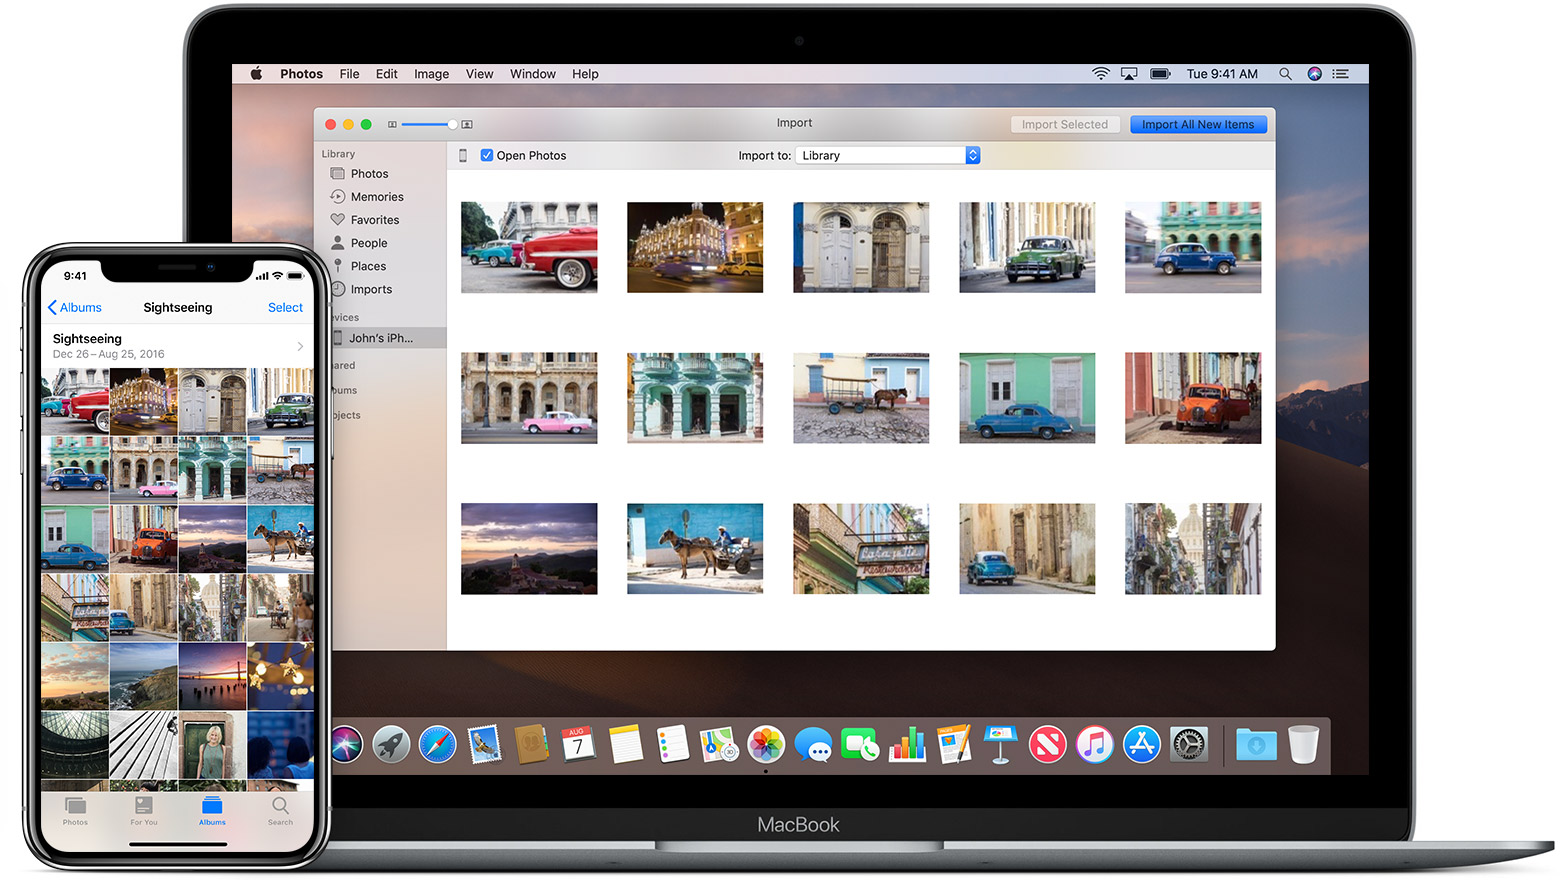 Locate the Photo Stream in the Finder